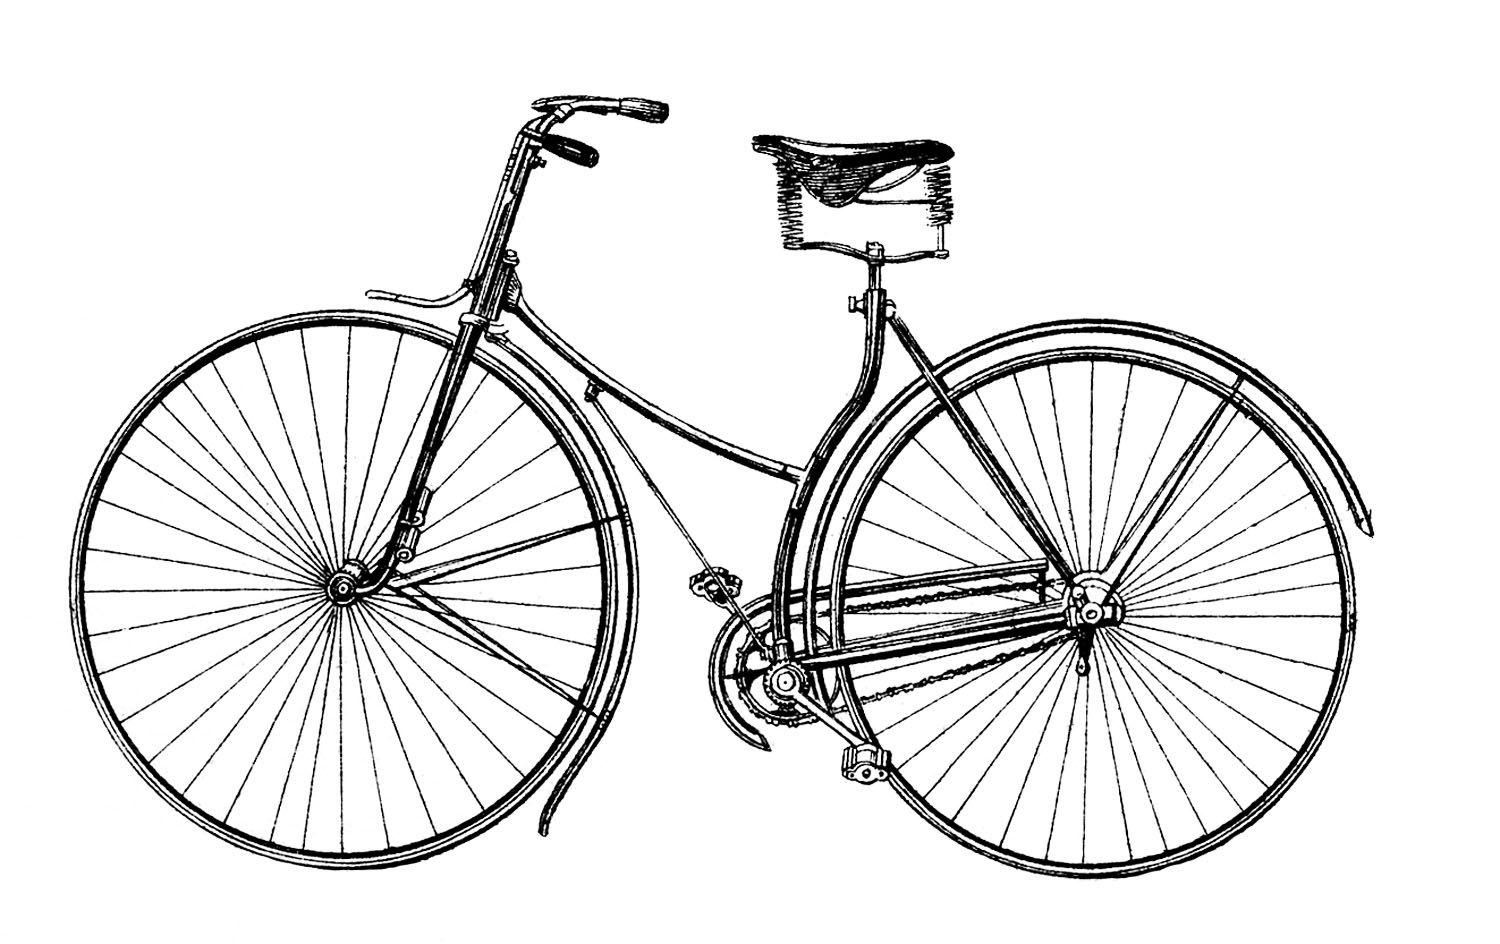 Bike clipart vintage bicycle Vintage on about bicycle art